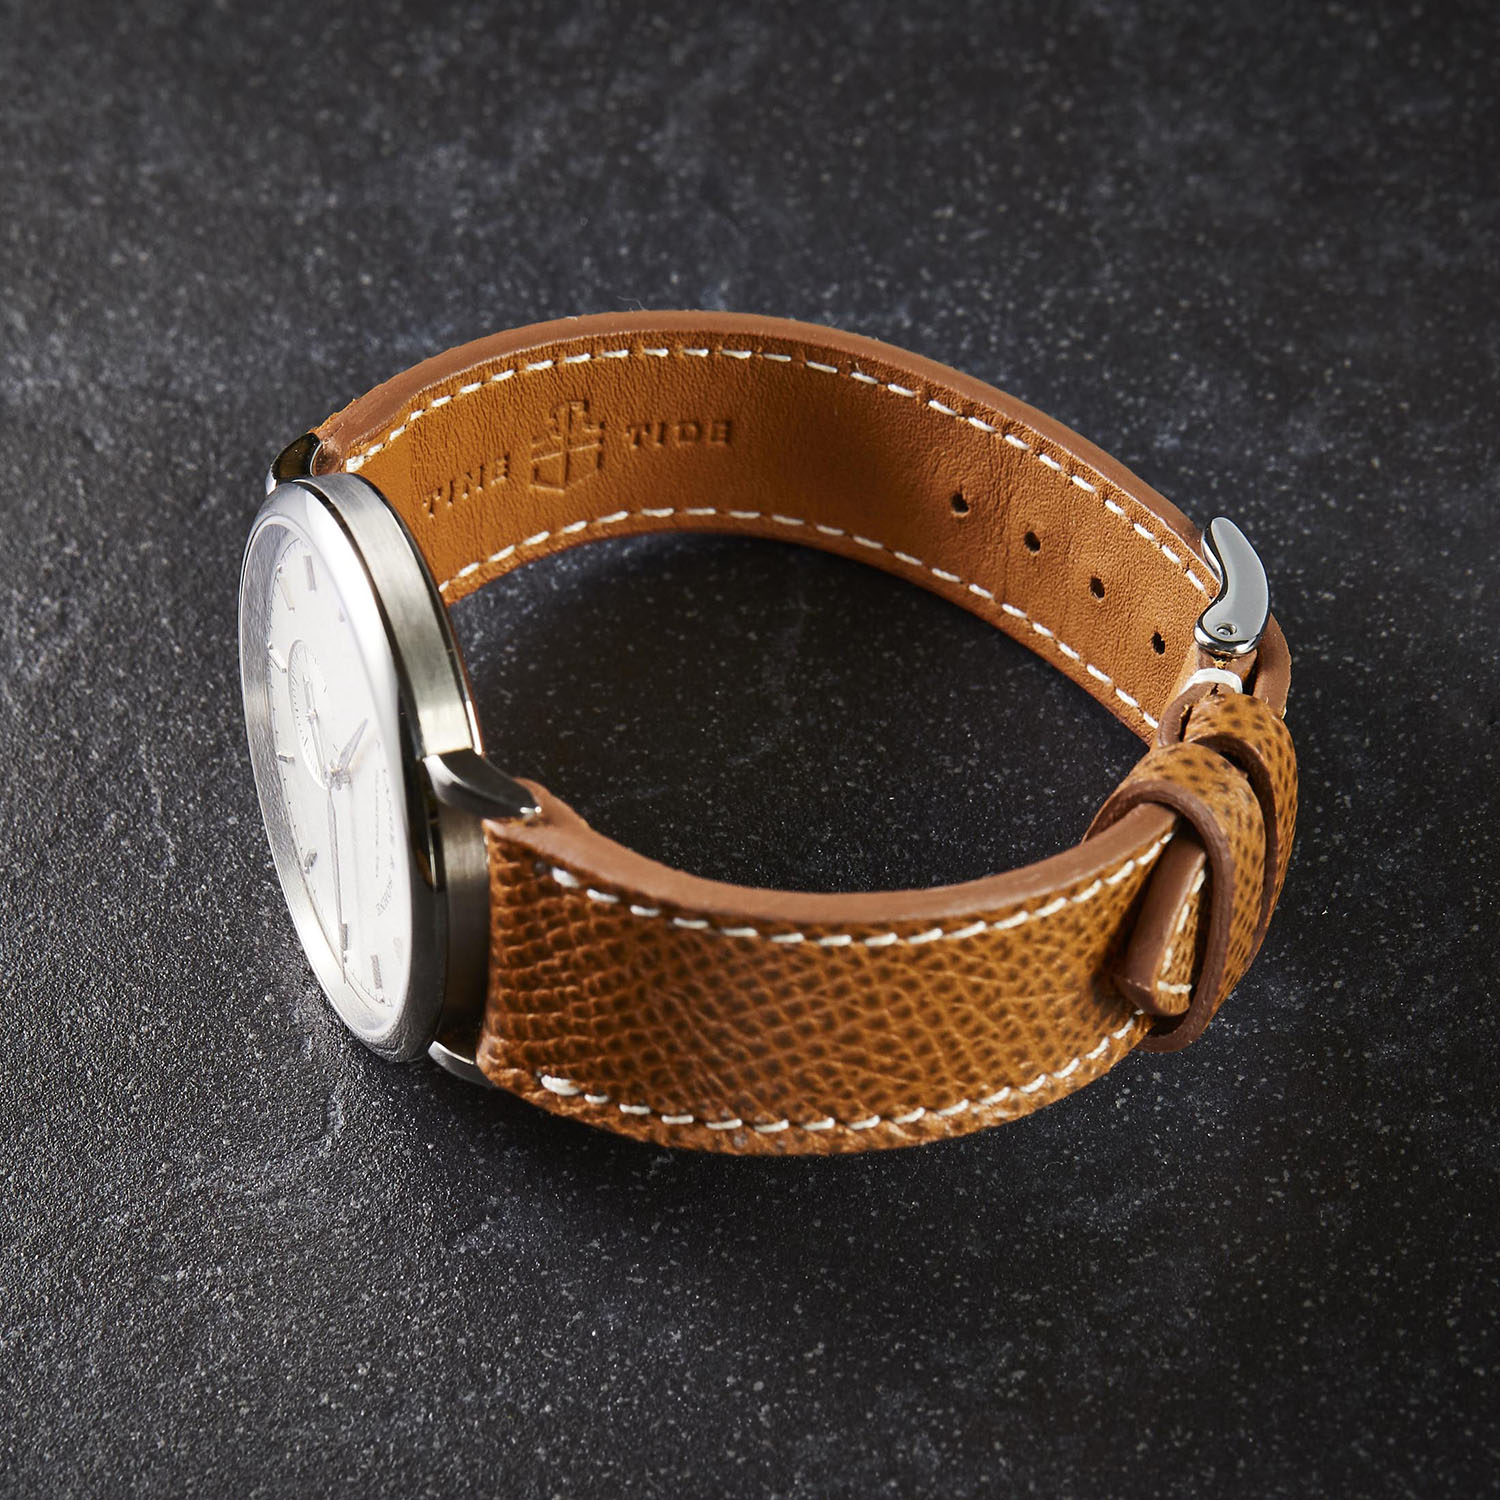 9c5e5507d Elegant Leather Watch Strap – Light Brown Leather with White Stitching